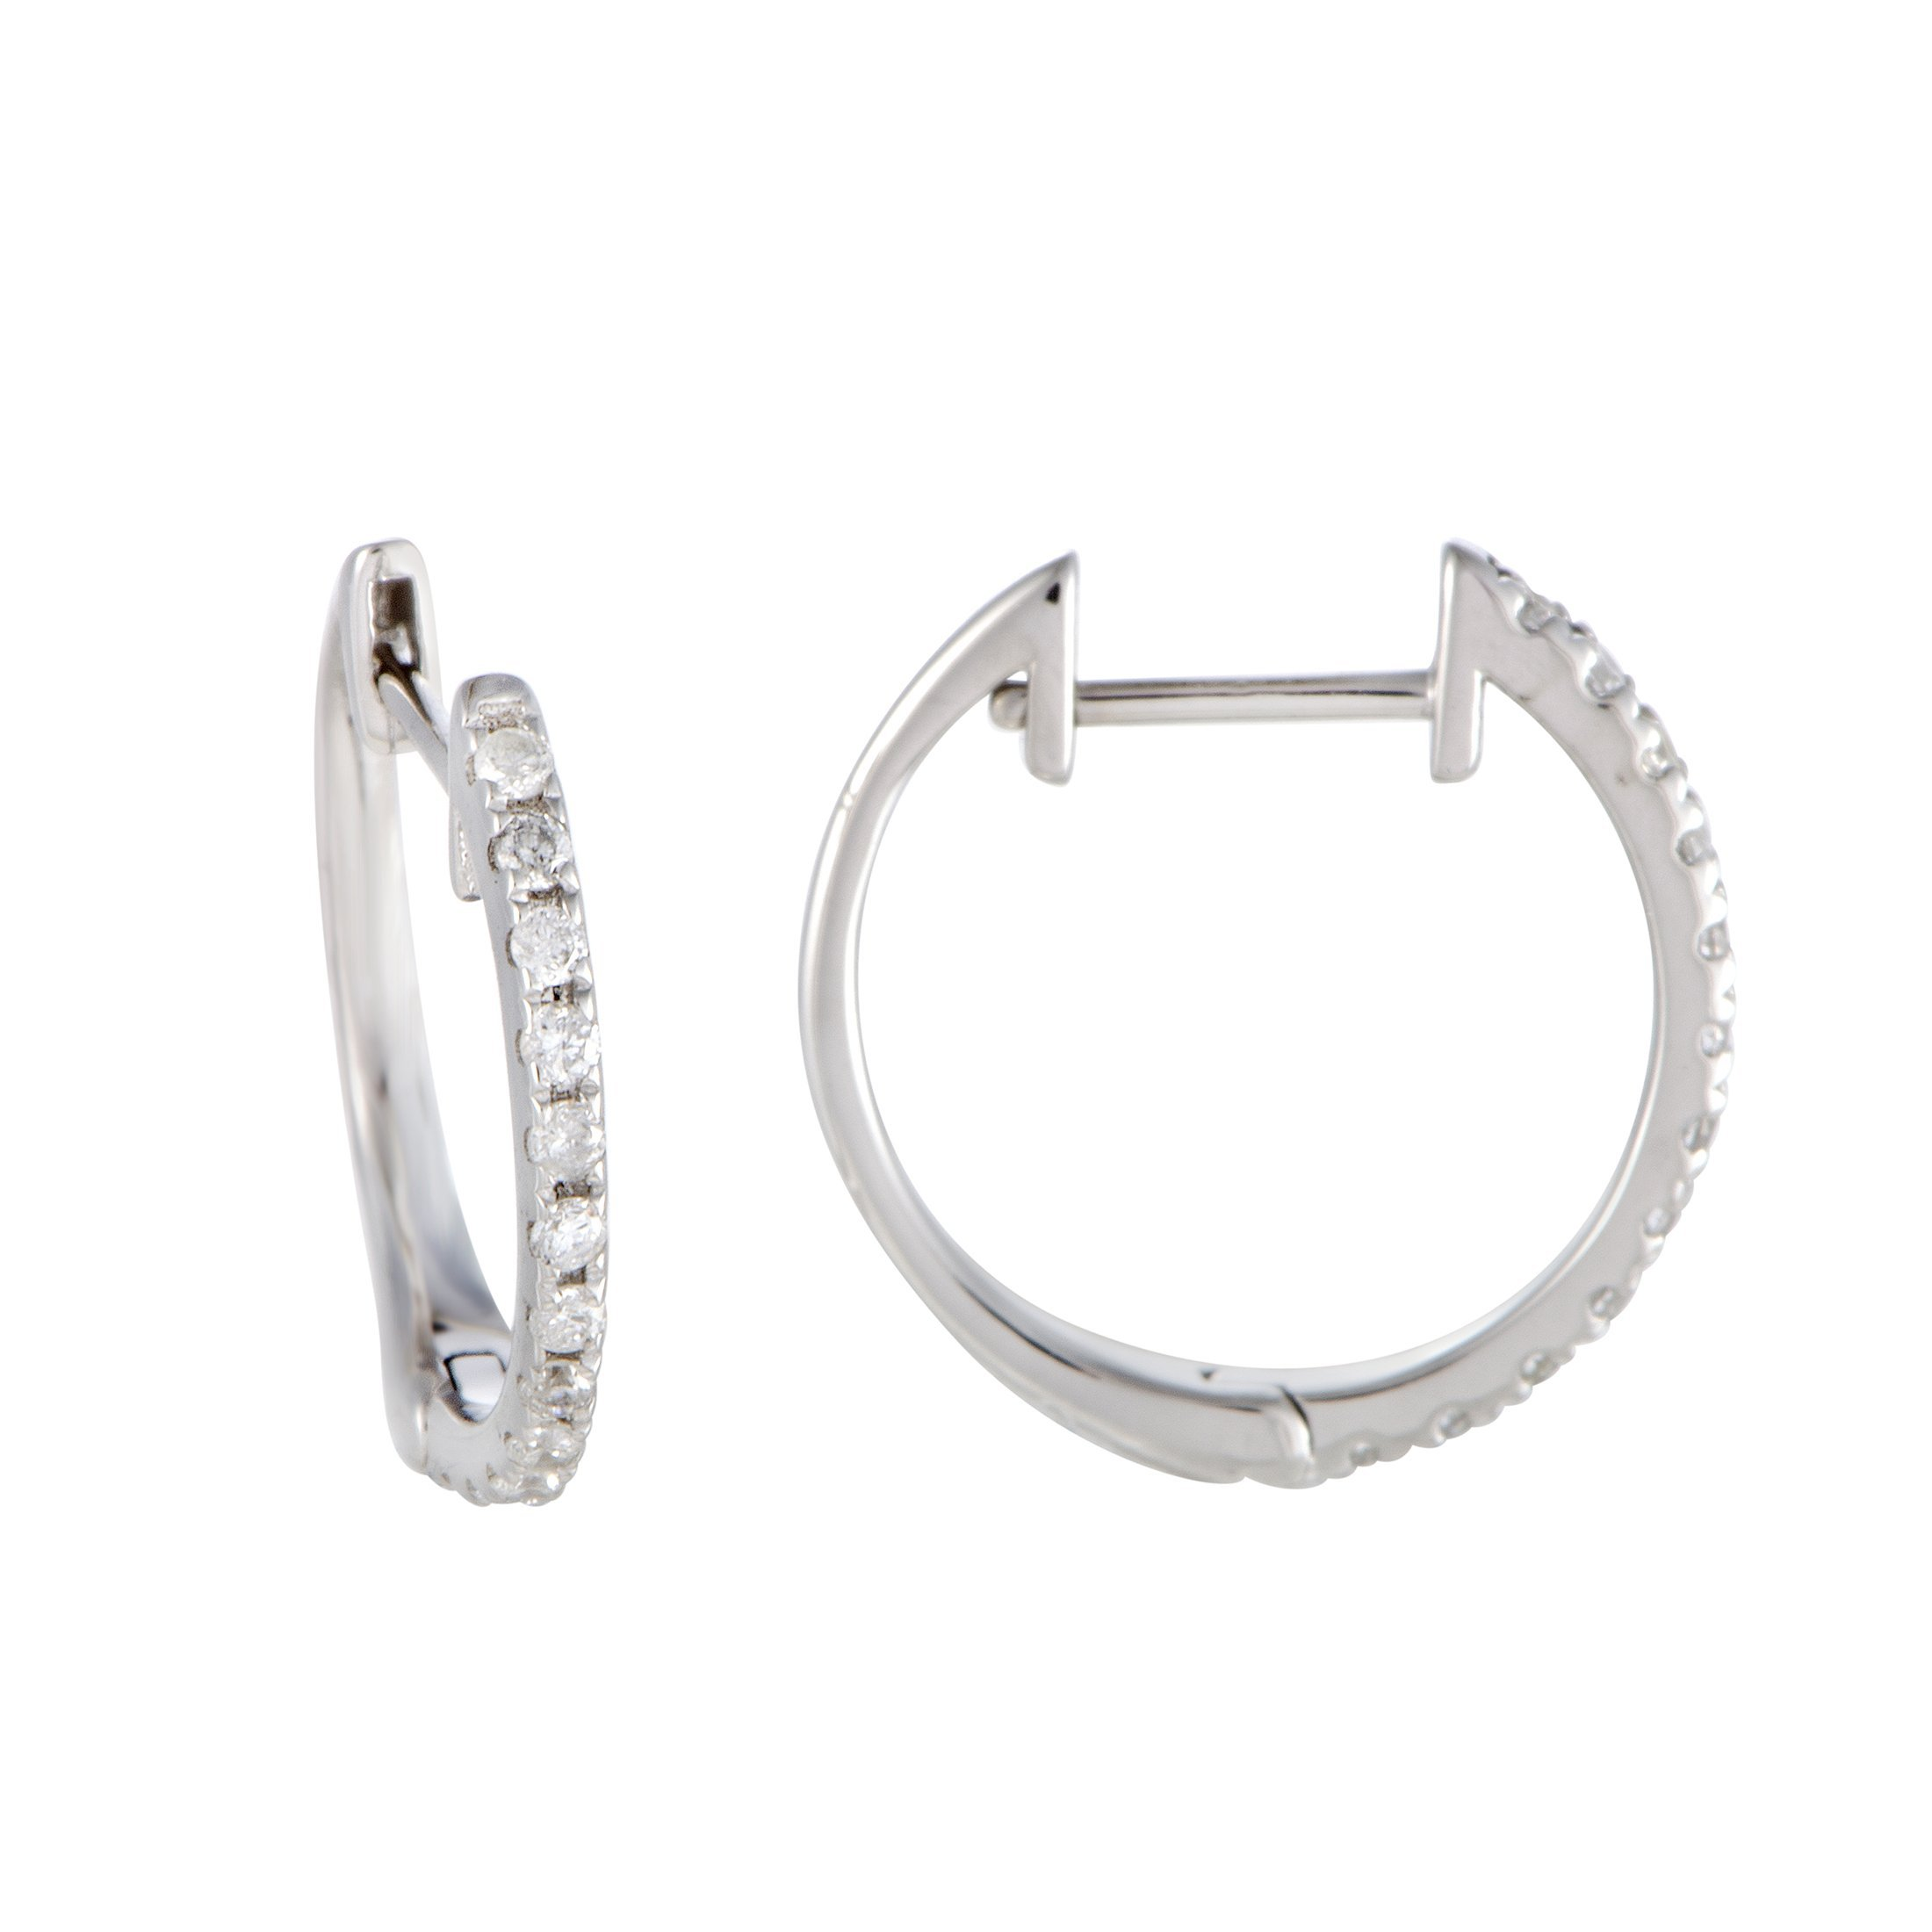 Sparkling 0.5'' Diamond Hoop Earrings in 10K White Gold; 0.20 Carats of Brilliant Diamonds (white-gold) by Luxury Bazaar (Image #3)